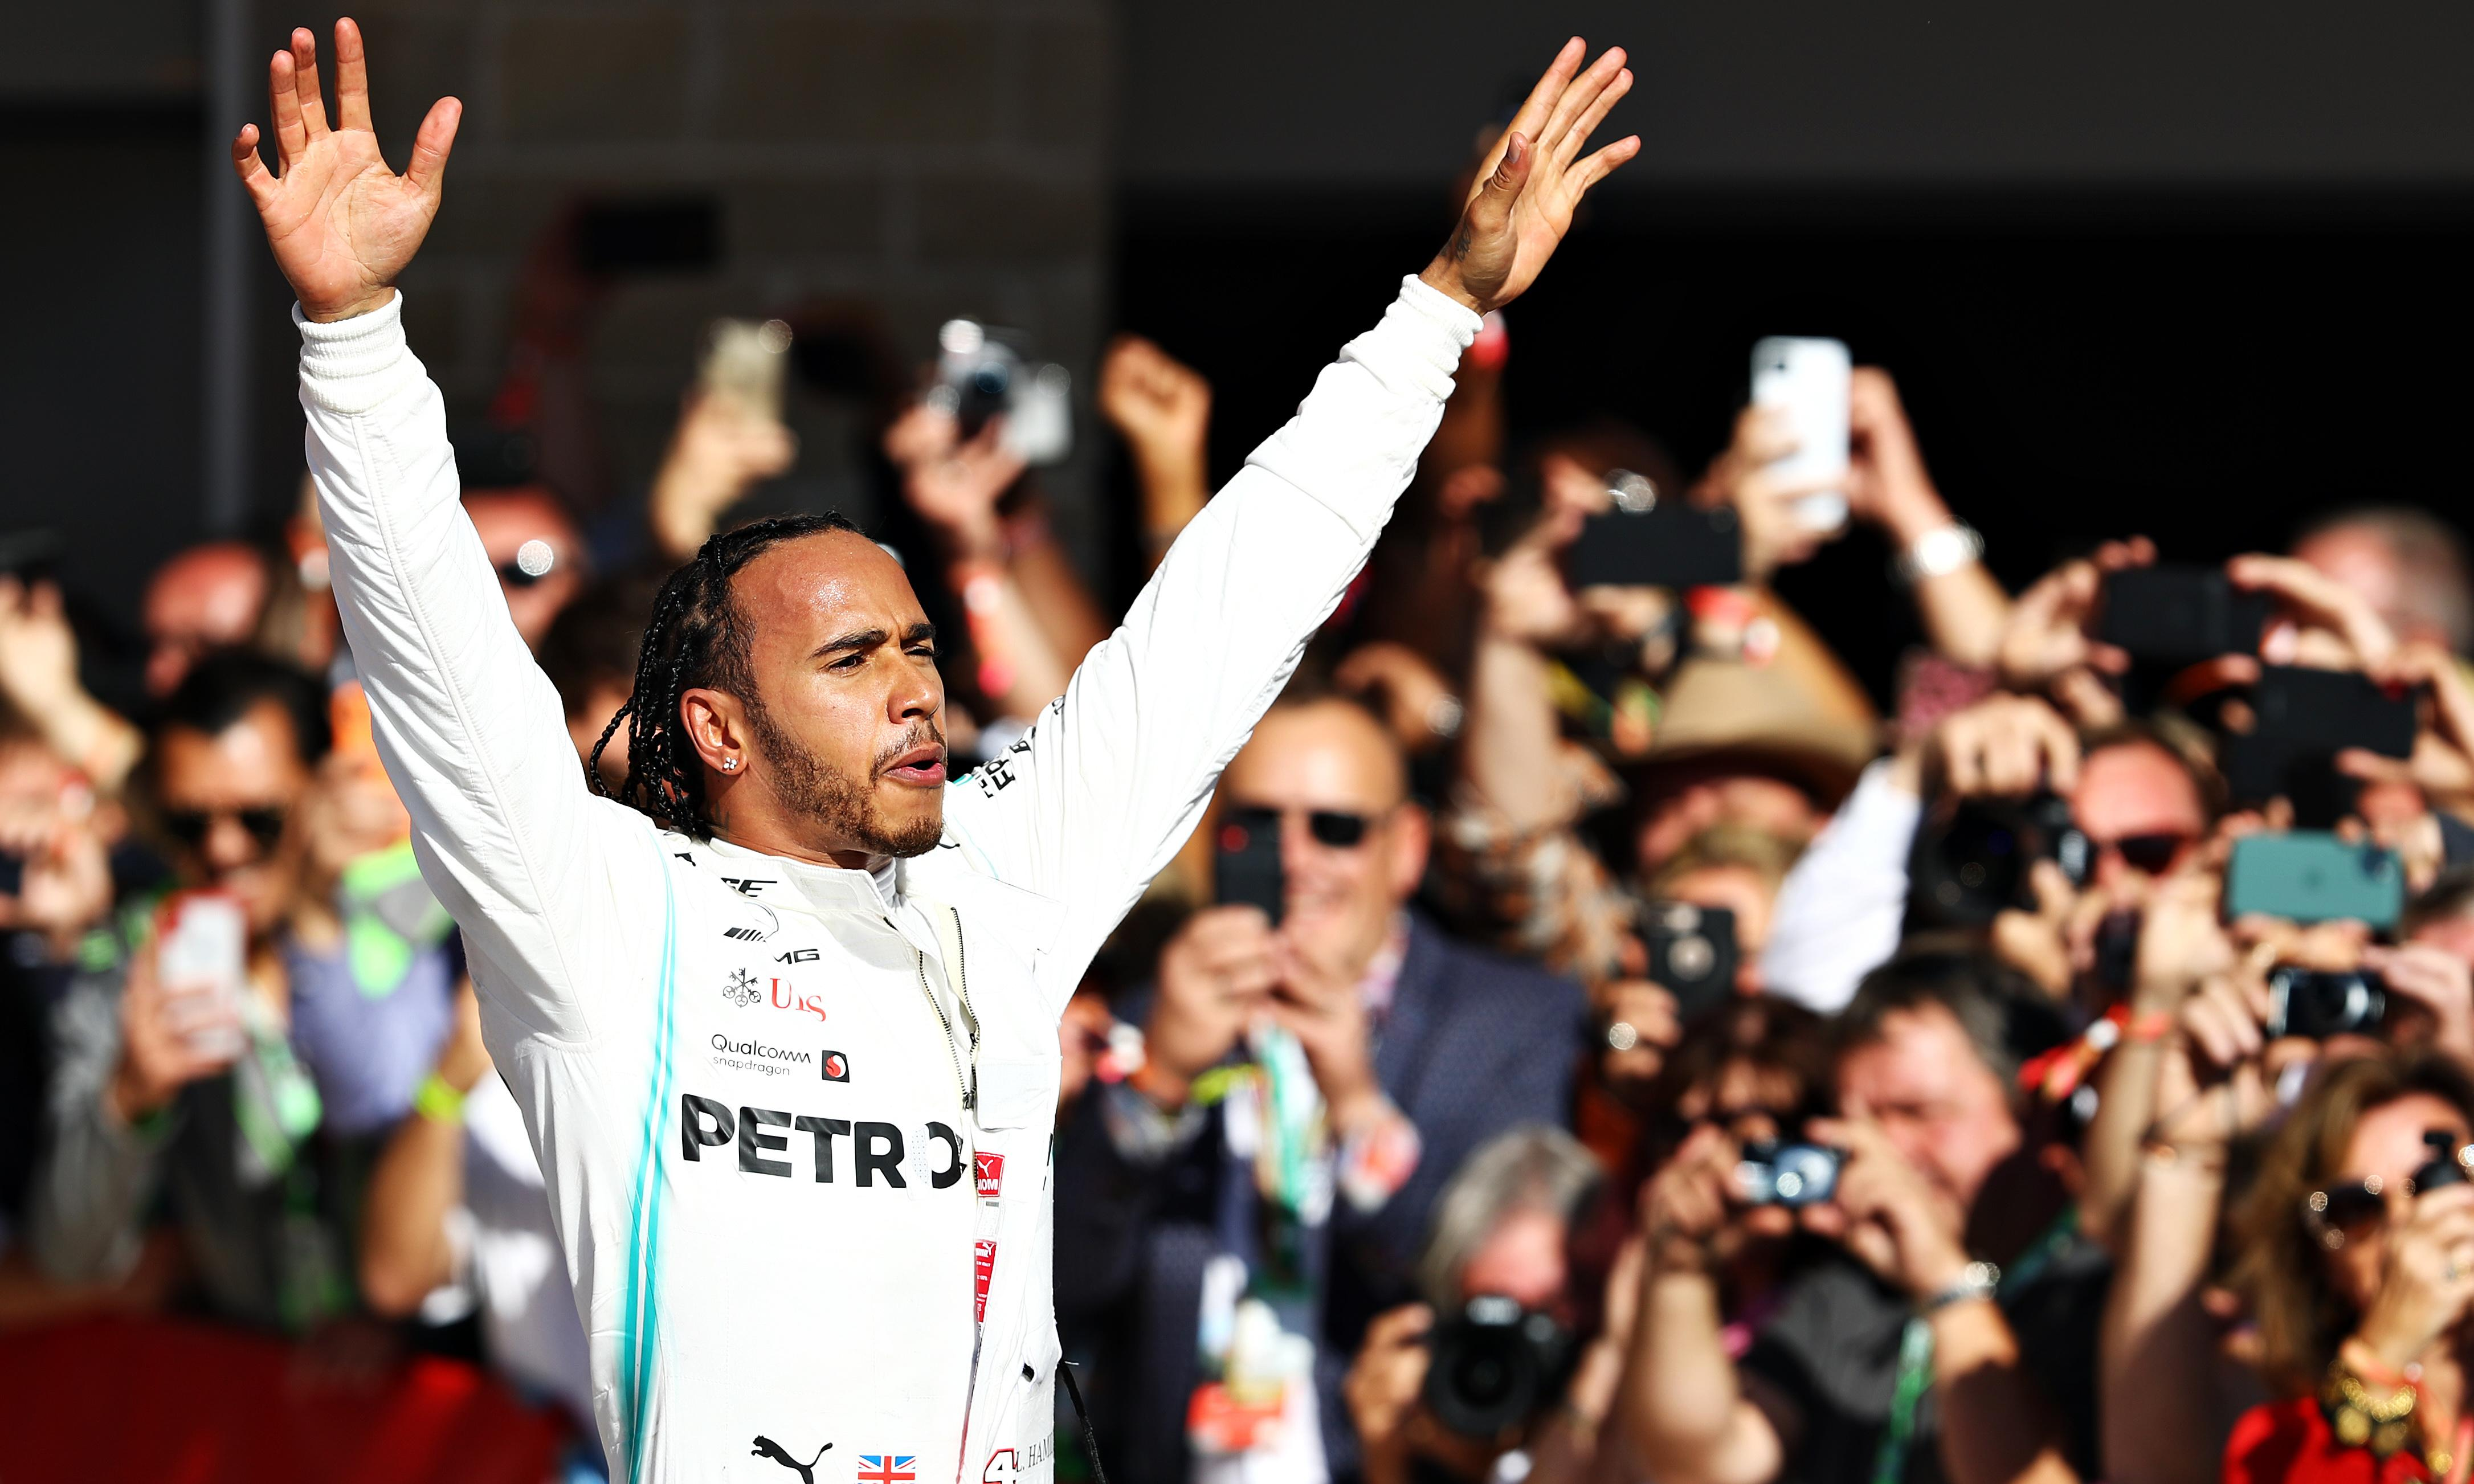 Lewis Hamilton seals sixth F1 world title with second place at US Grand Prix